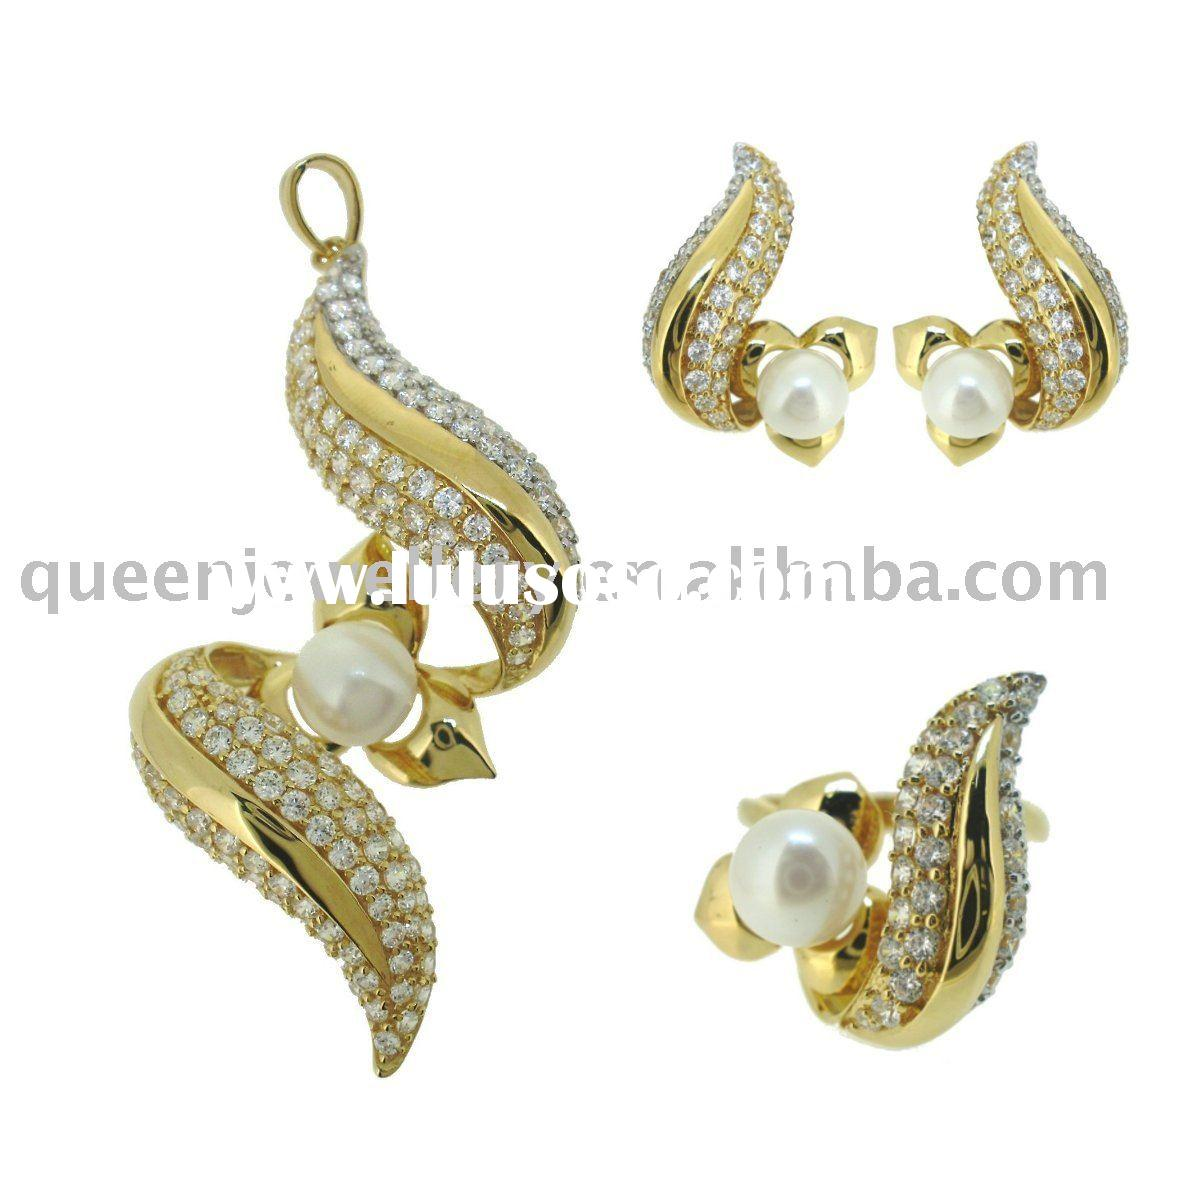 pearl jewelry set in 18k solid gold jewellery with cz QPH039